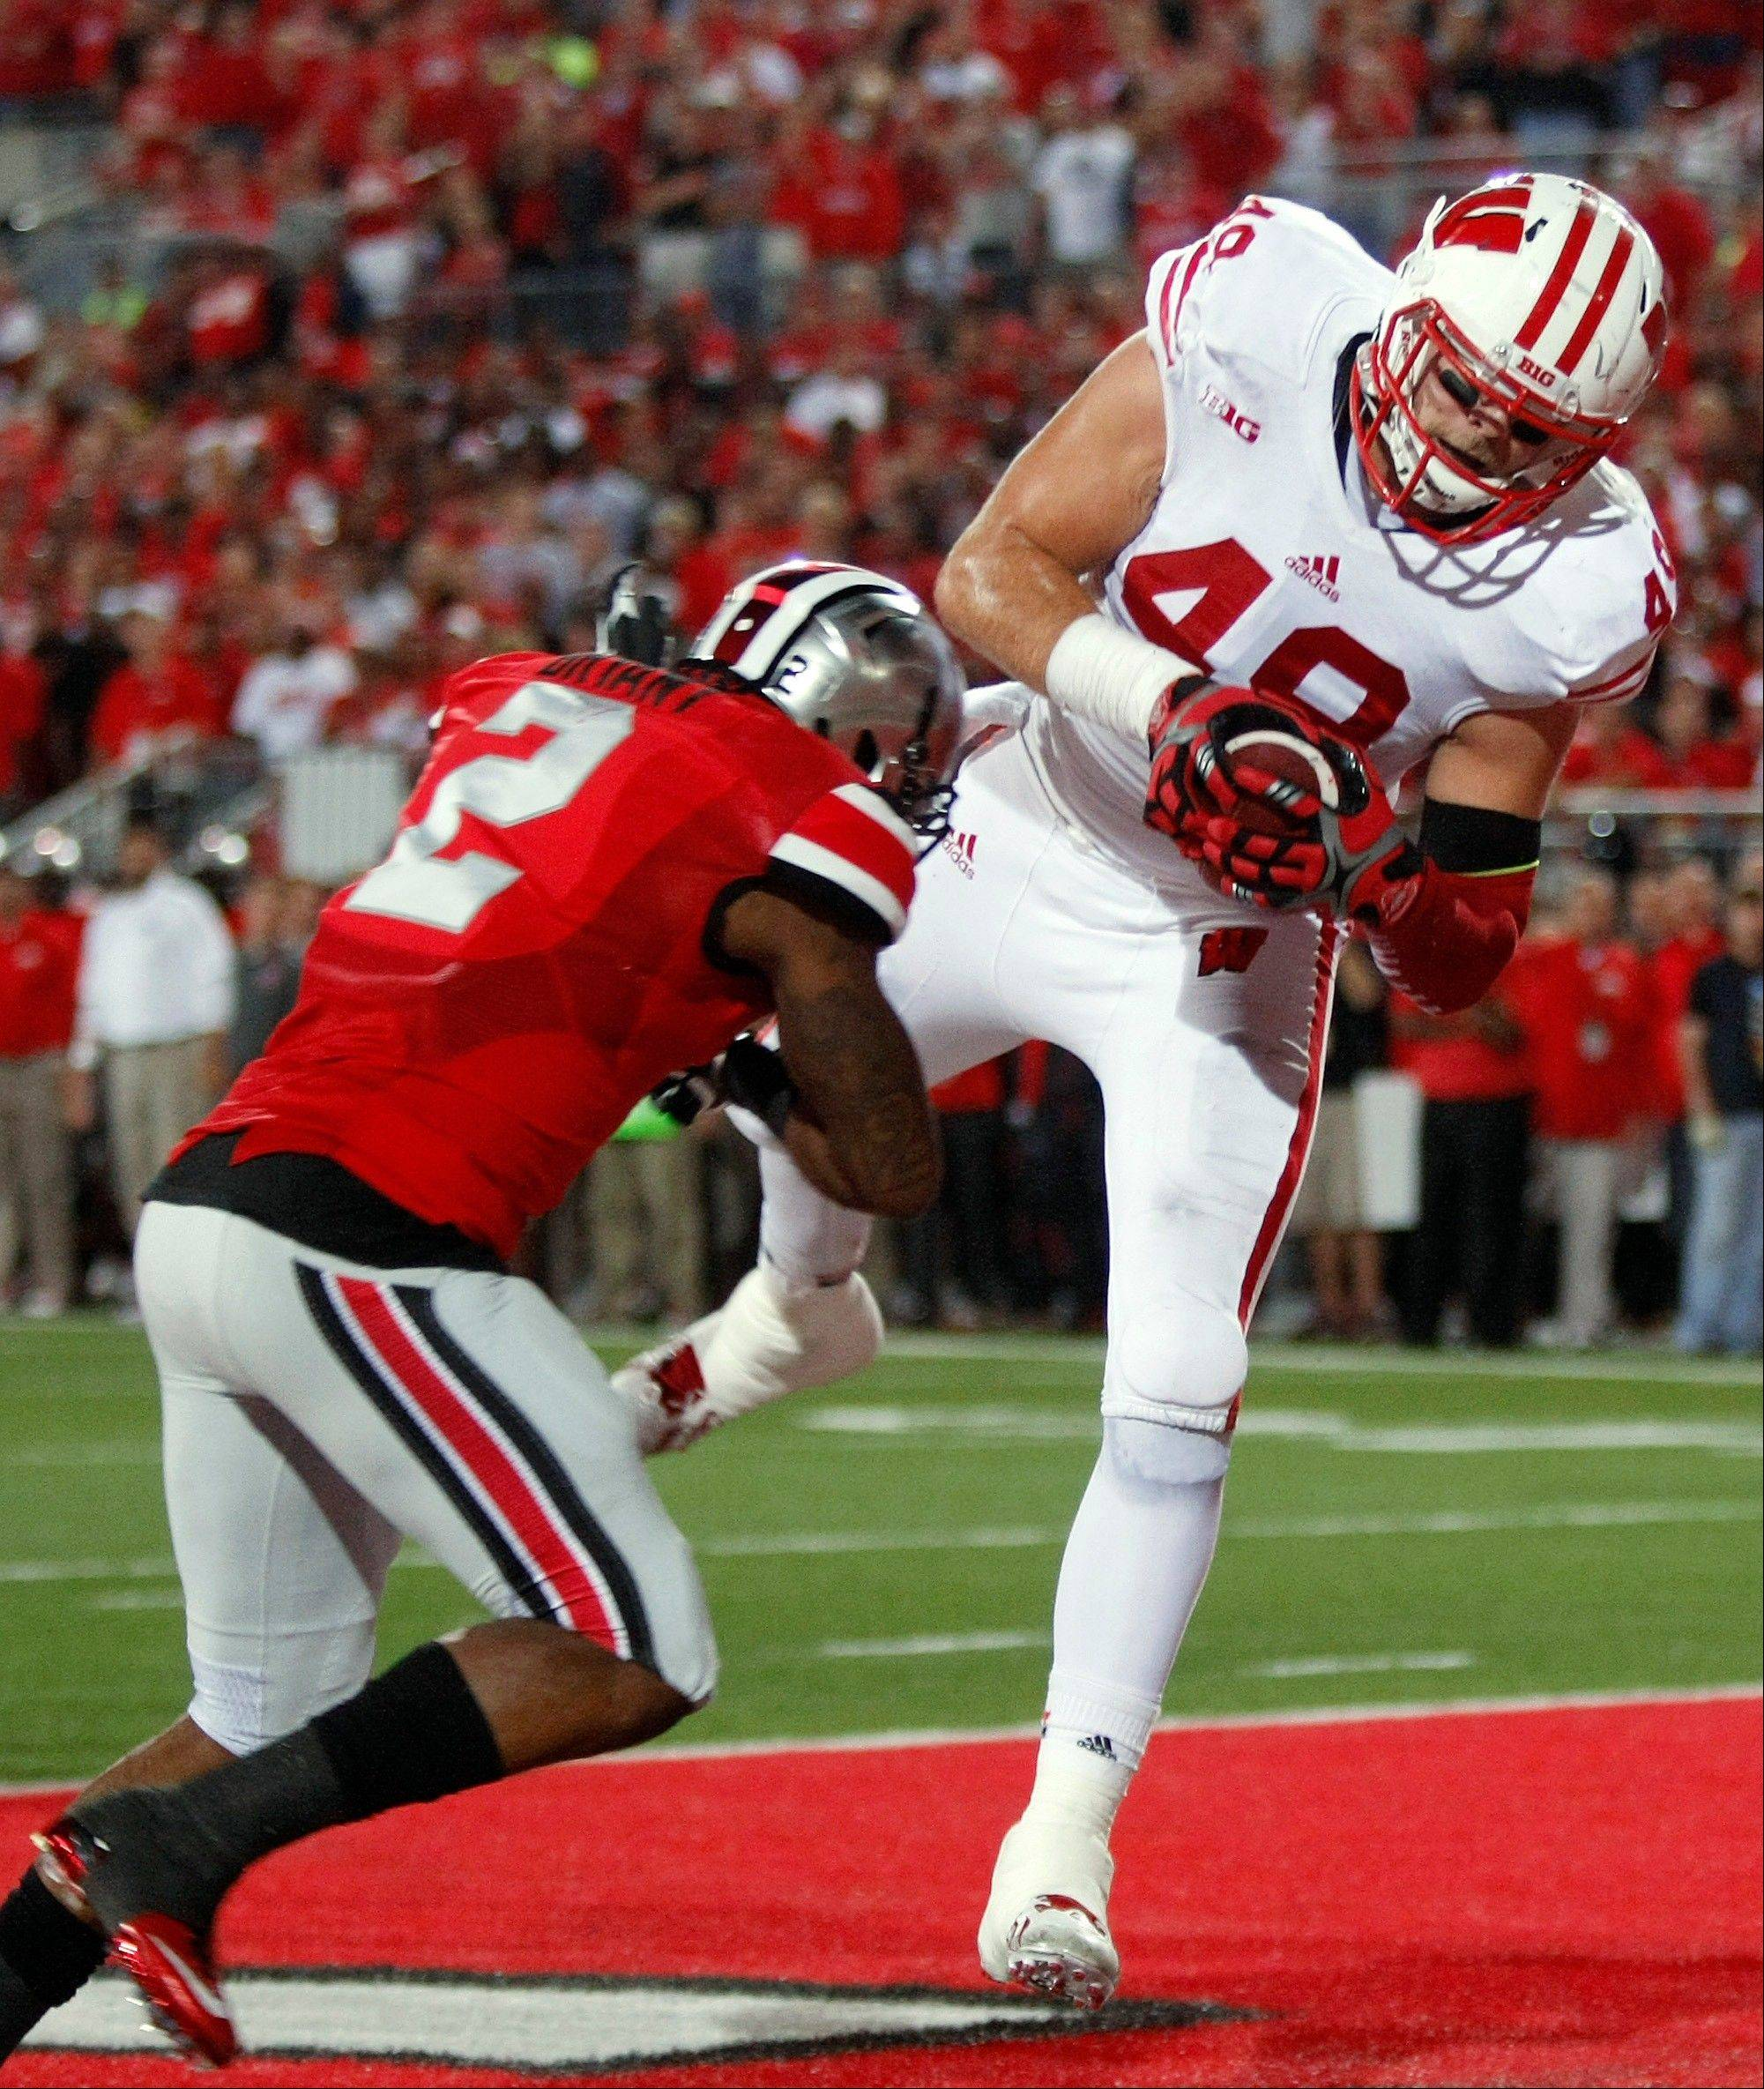 Wisconsin tight end Sam Arnesen, right, catches a pass for a touchdown as Ohio State safety Christian Bryant defends during Saturday's game in Columbus, Ohio. Bryant suffered a broken ankle late in the game and is out for rest of the year.